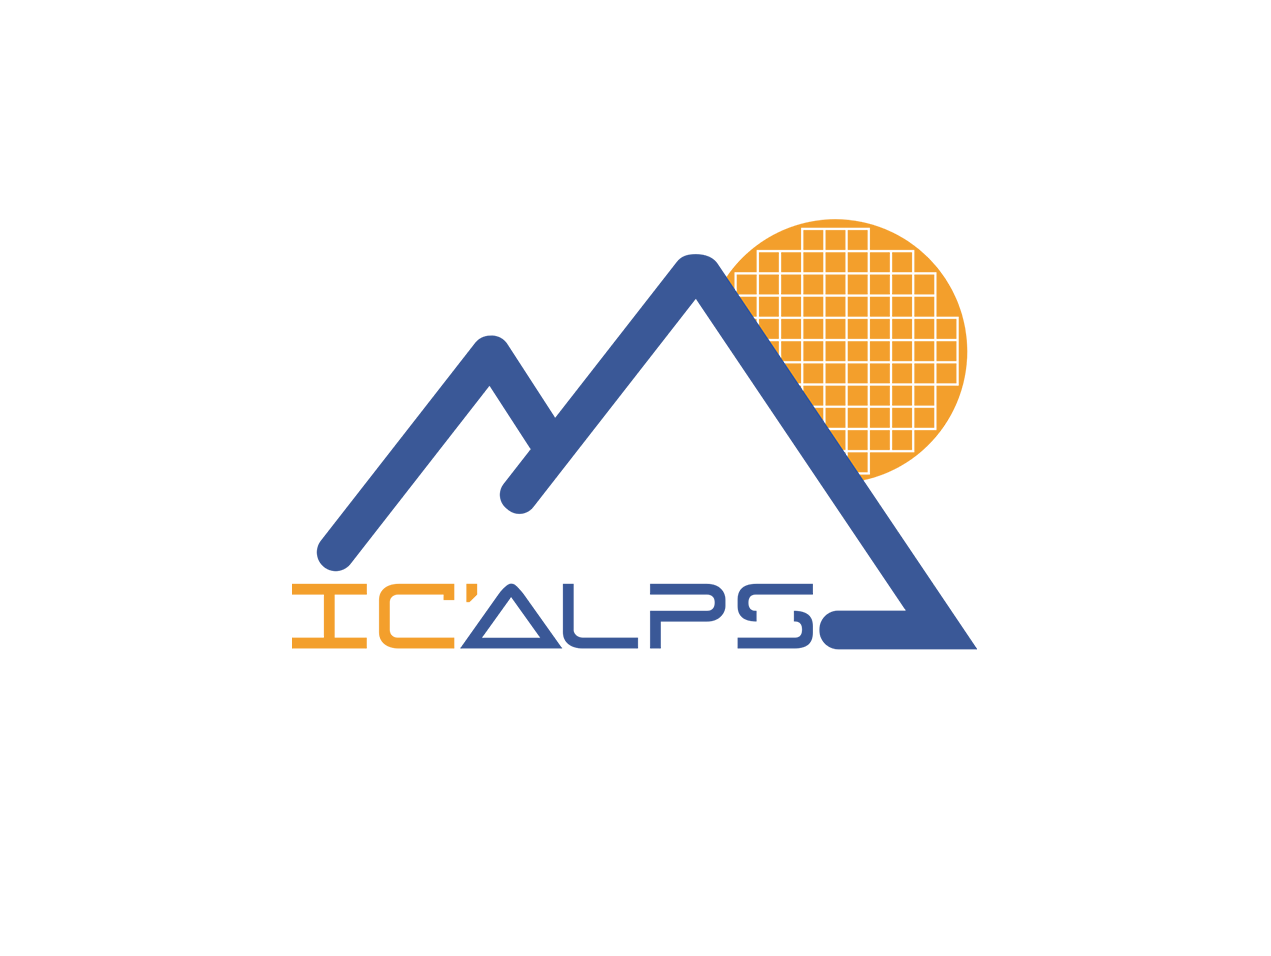 icalps